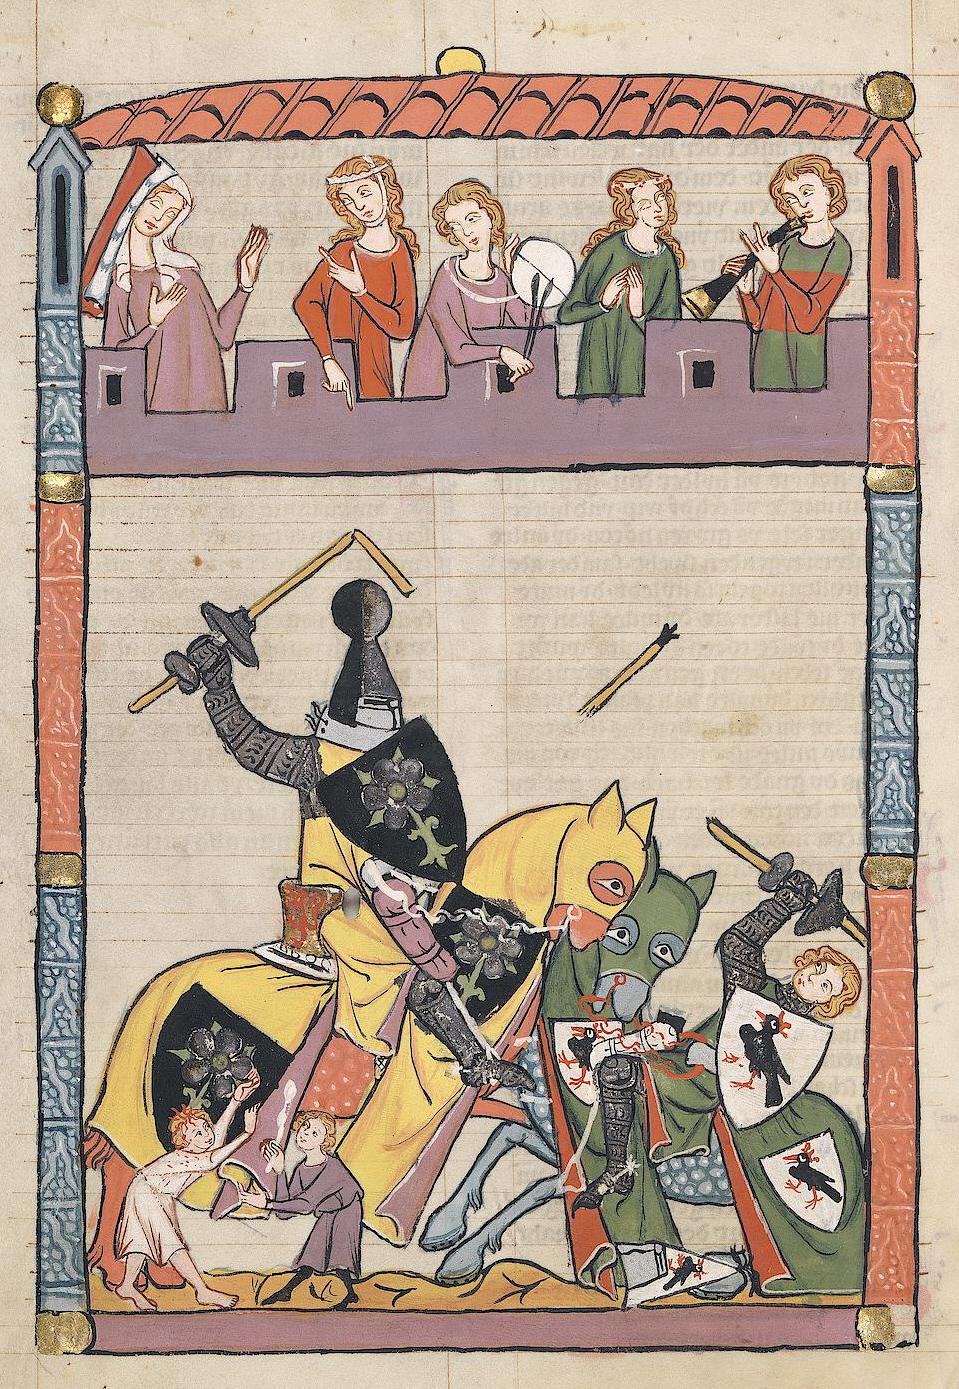 Tournament before an audience and musicians (14th century)